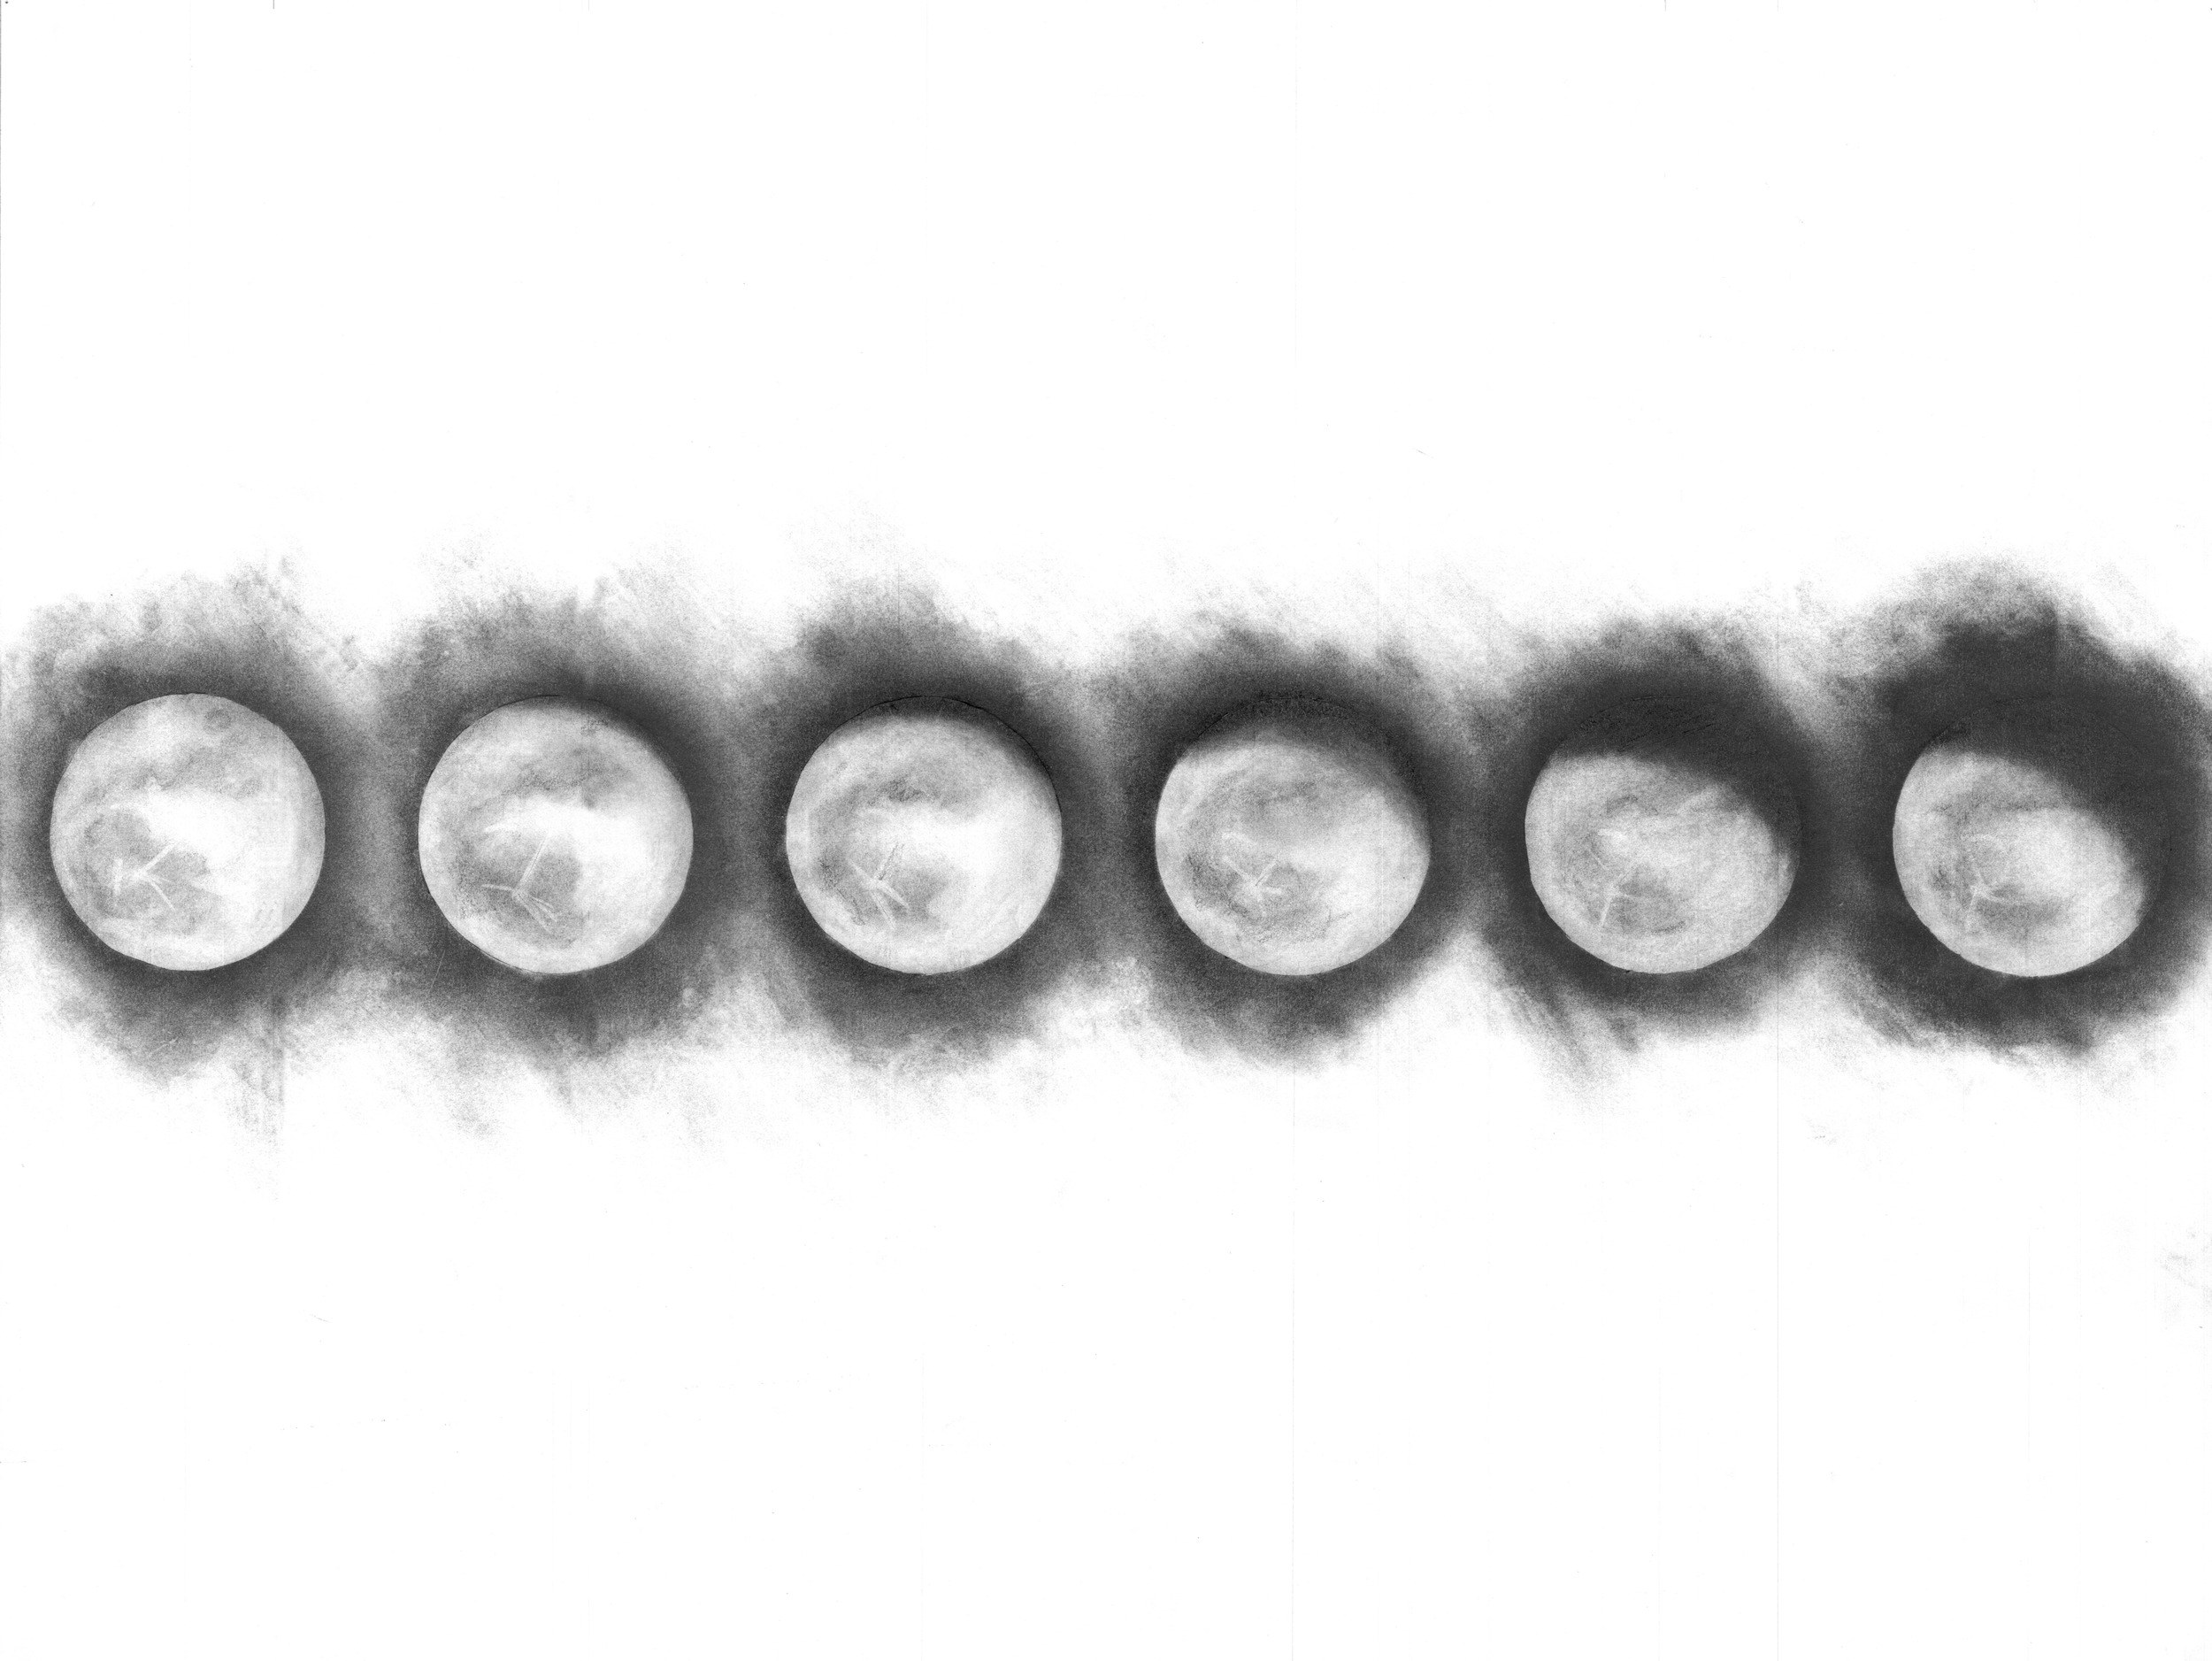 Moon Phases from March 5th through 10th of 2015.